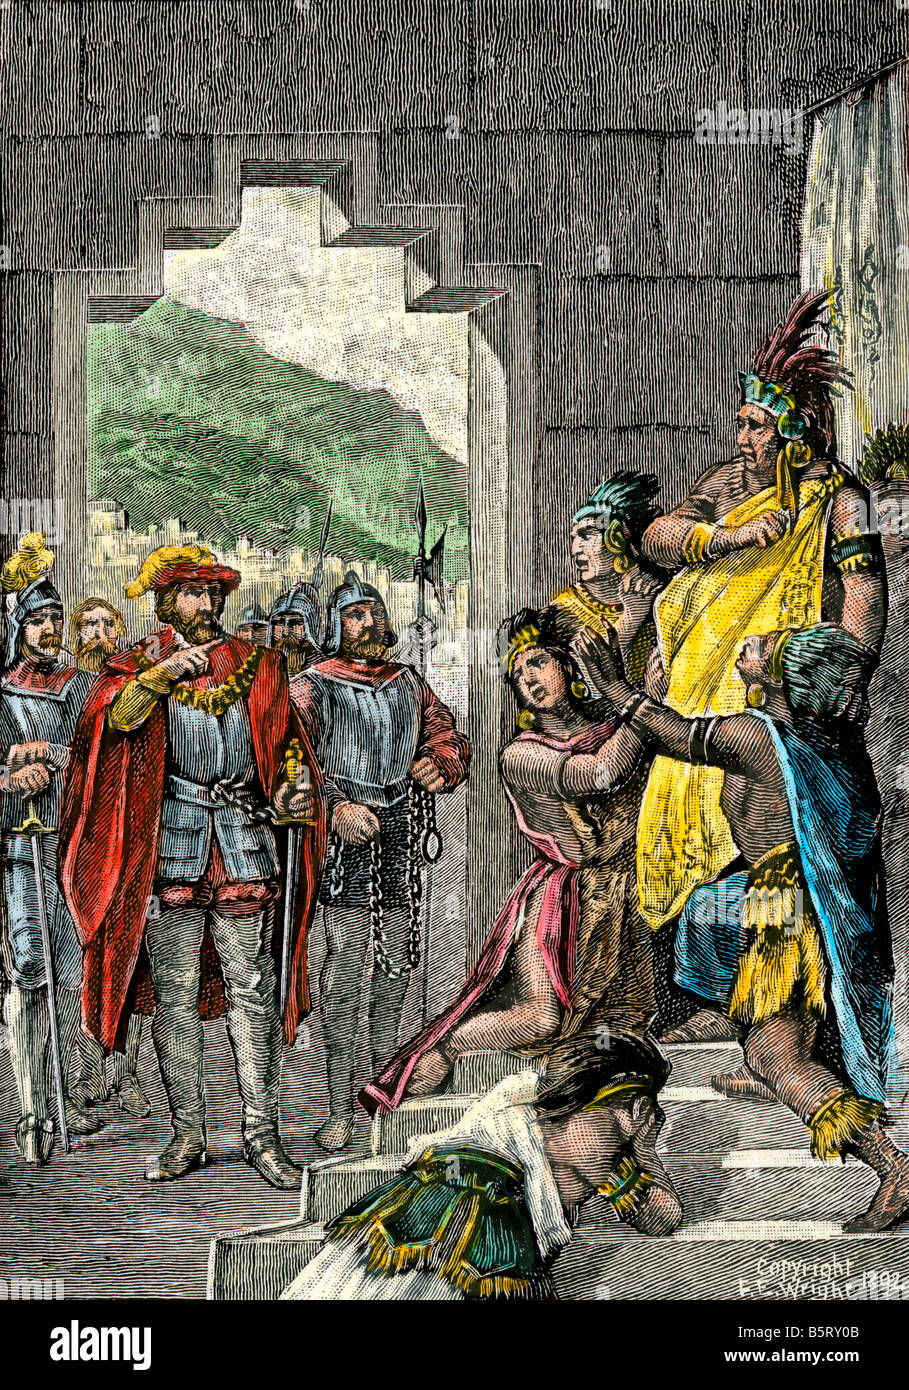 spanish and incan advantages during the The spanish had no idea at first how lucky they were to be alive after they entered the capital city the spanish were looking for people to convert to the catholic religion, and gold to capture boy, did they people and gold.